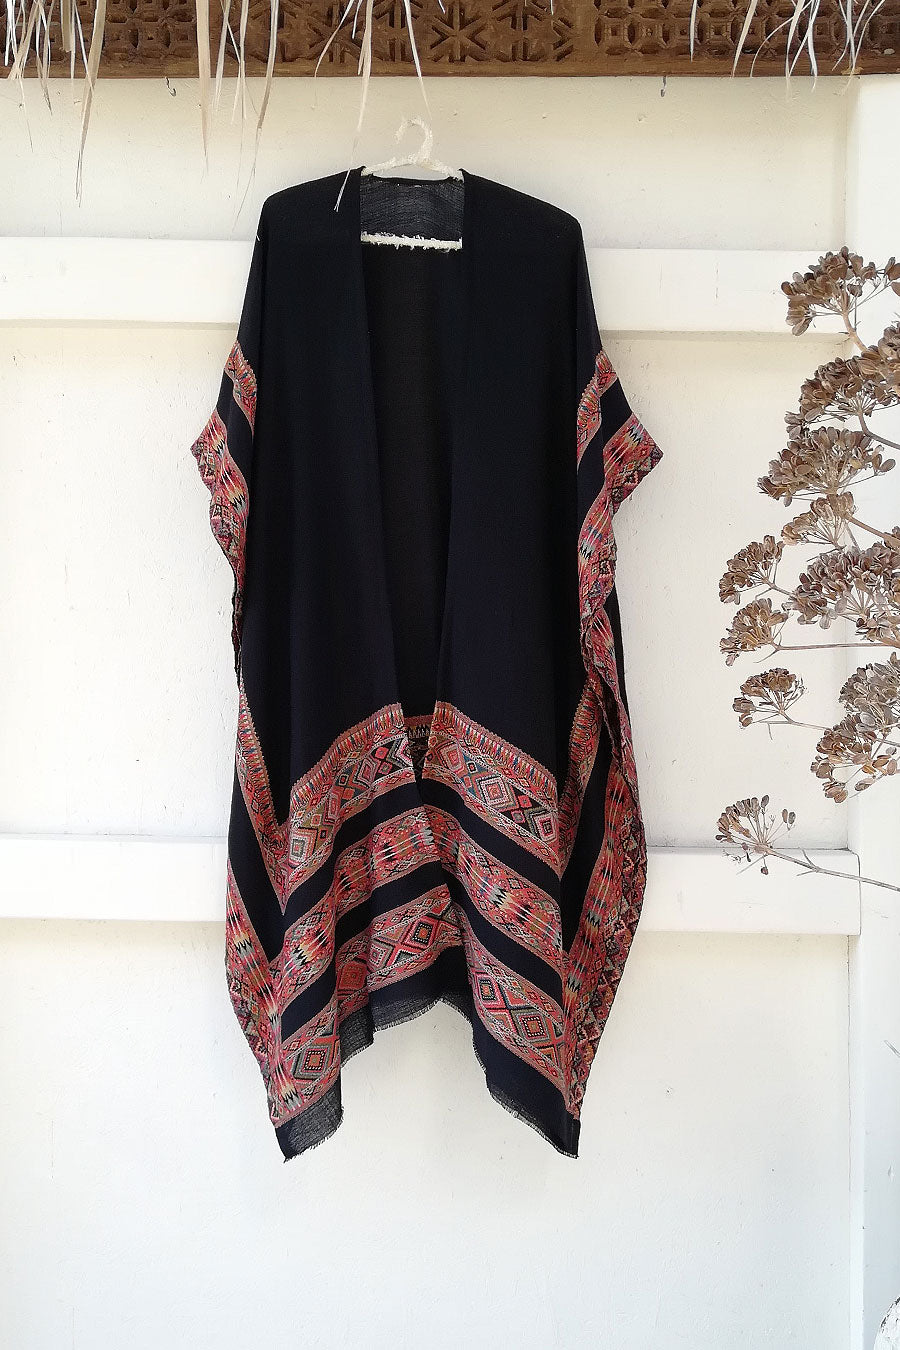 Black Unisex Boho Poncho from Quality Wool